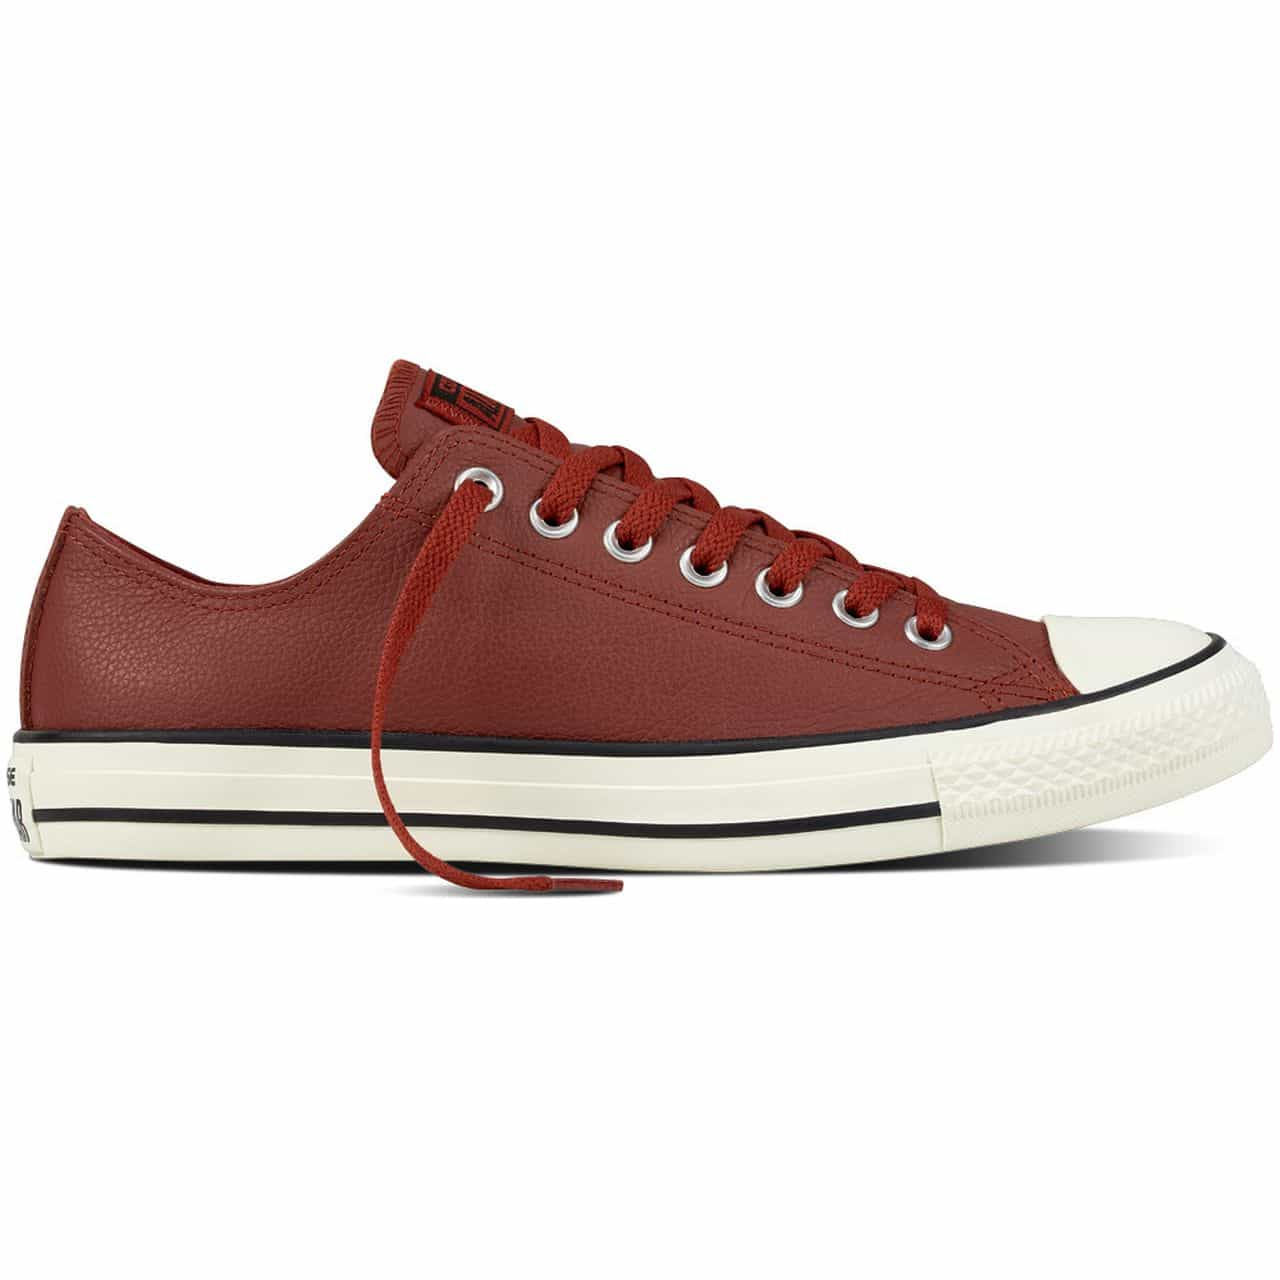 TENISI ORIGINALI CONVERSE CHUCK TAYLOR AS OX - 157567C